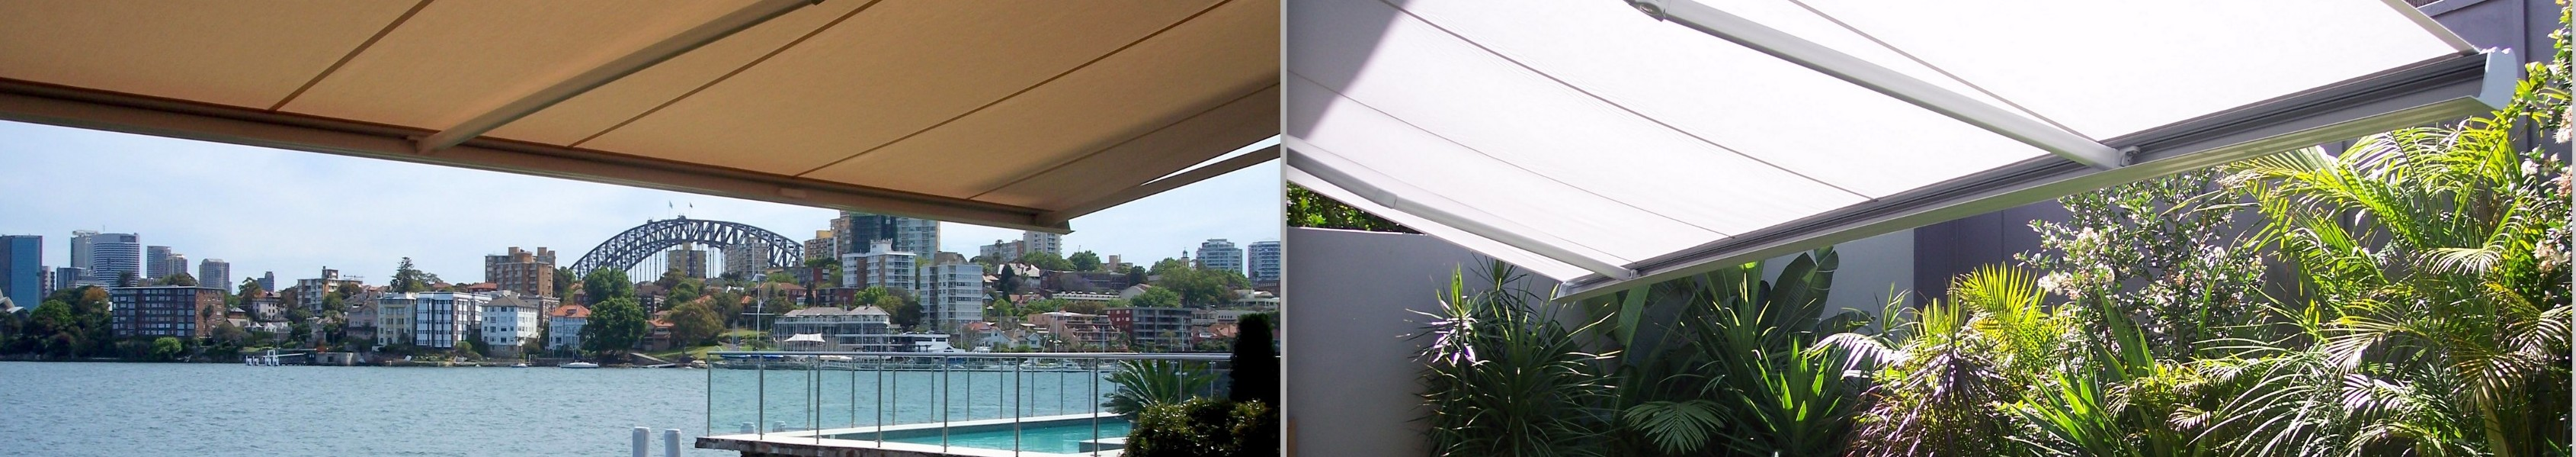 folding arm awnings sydney harbour